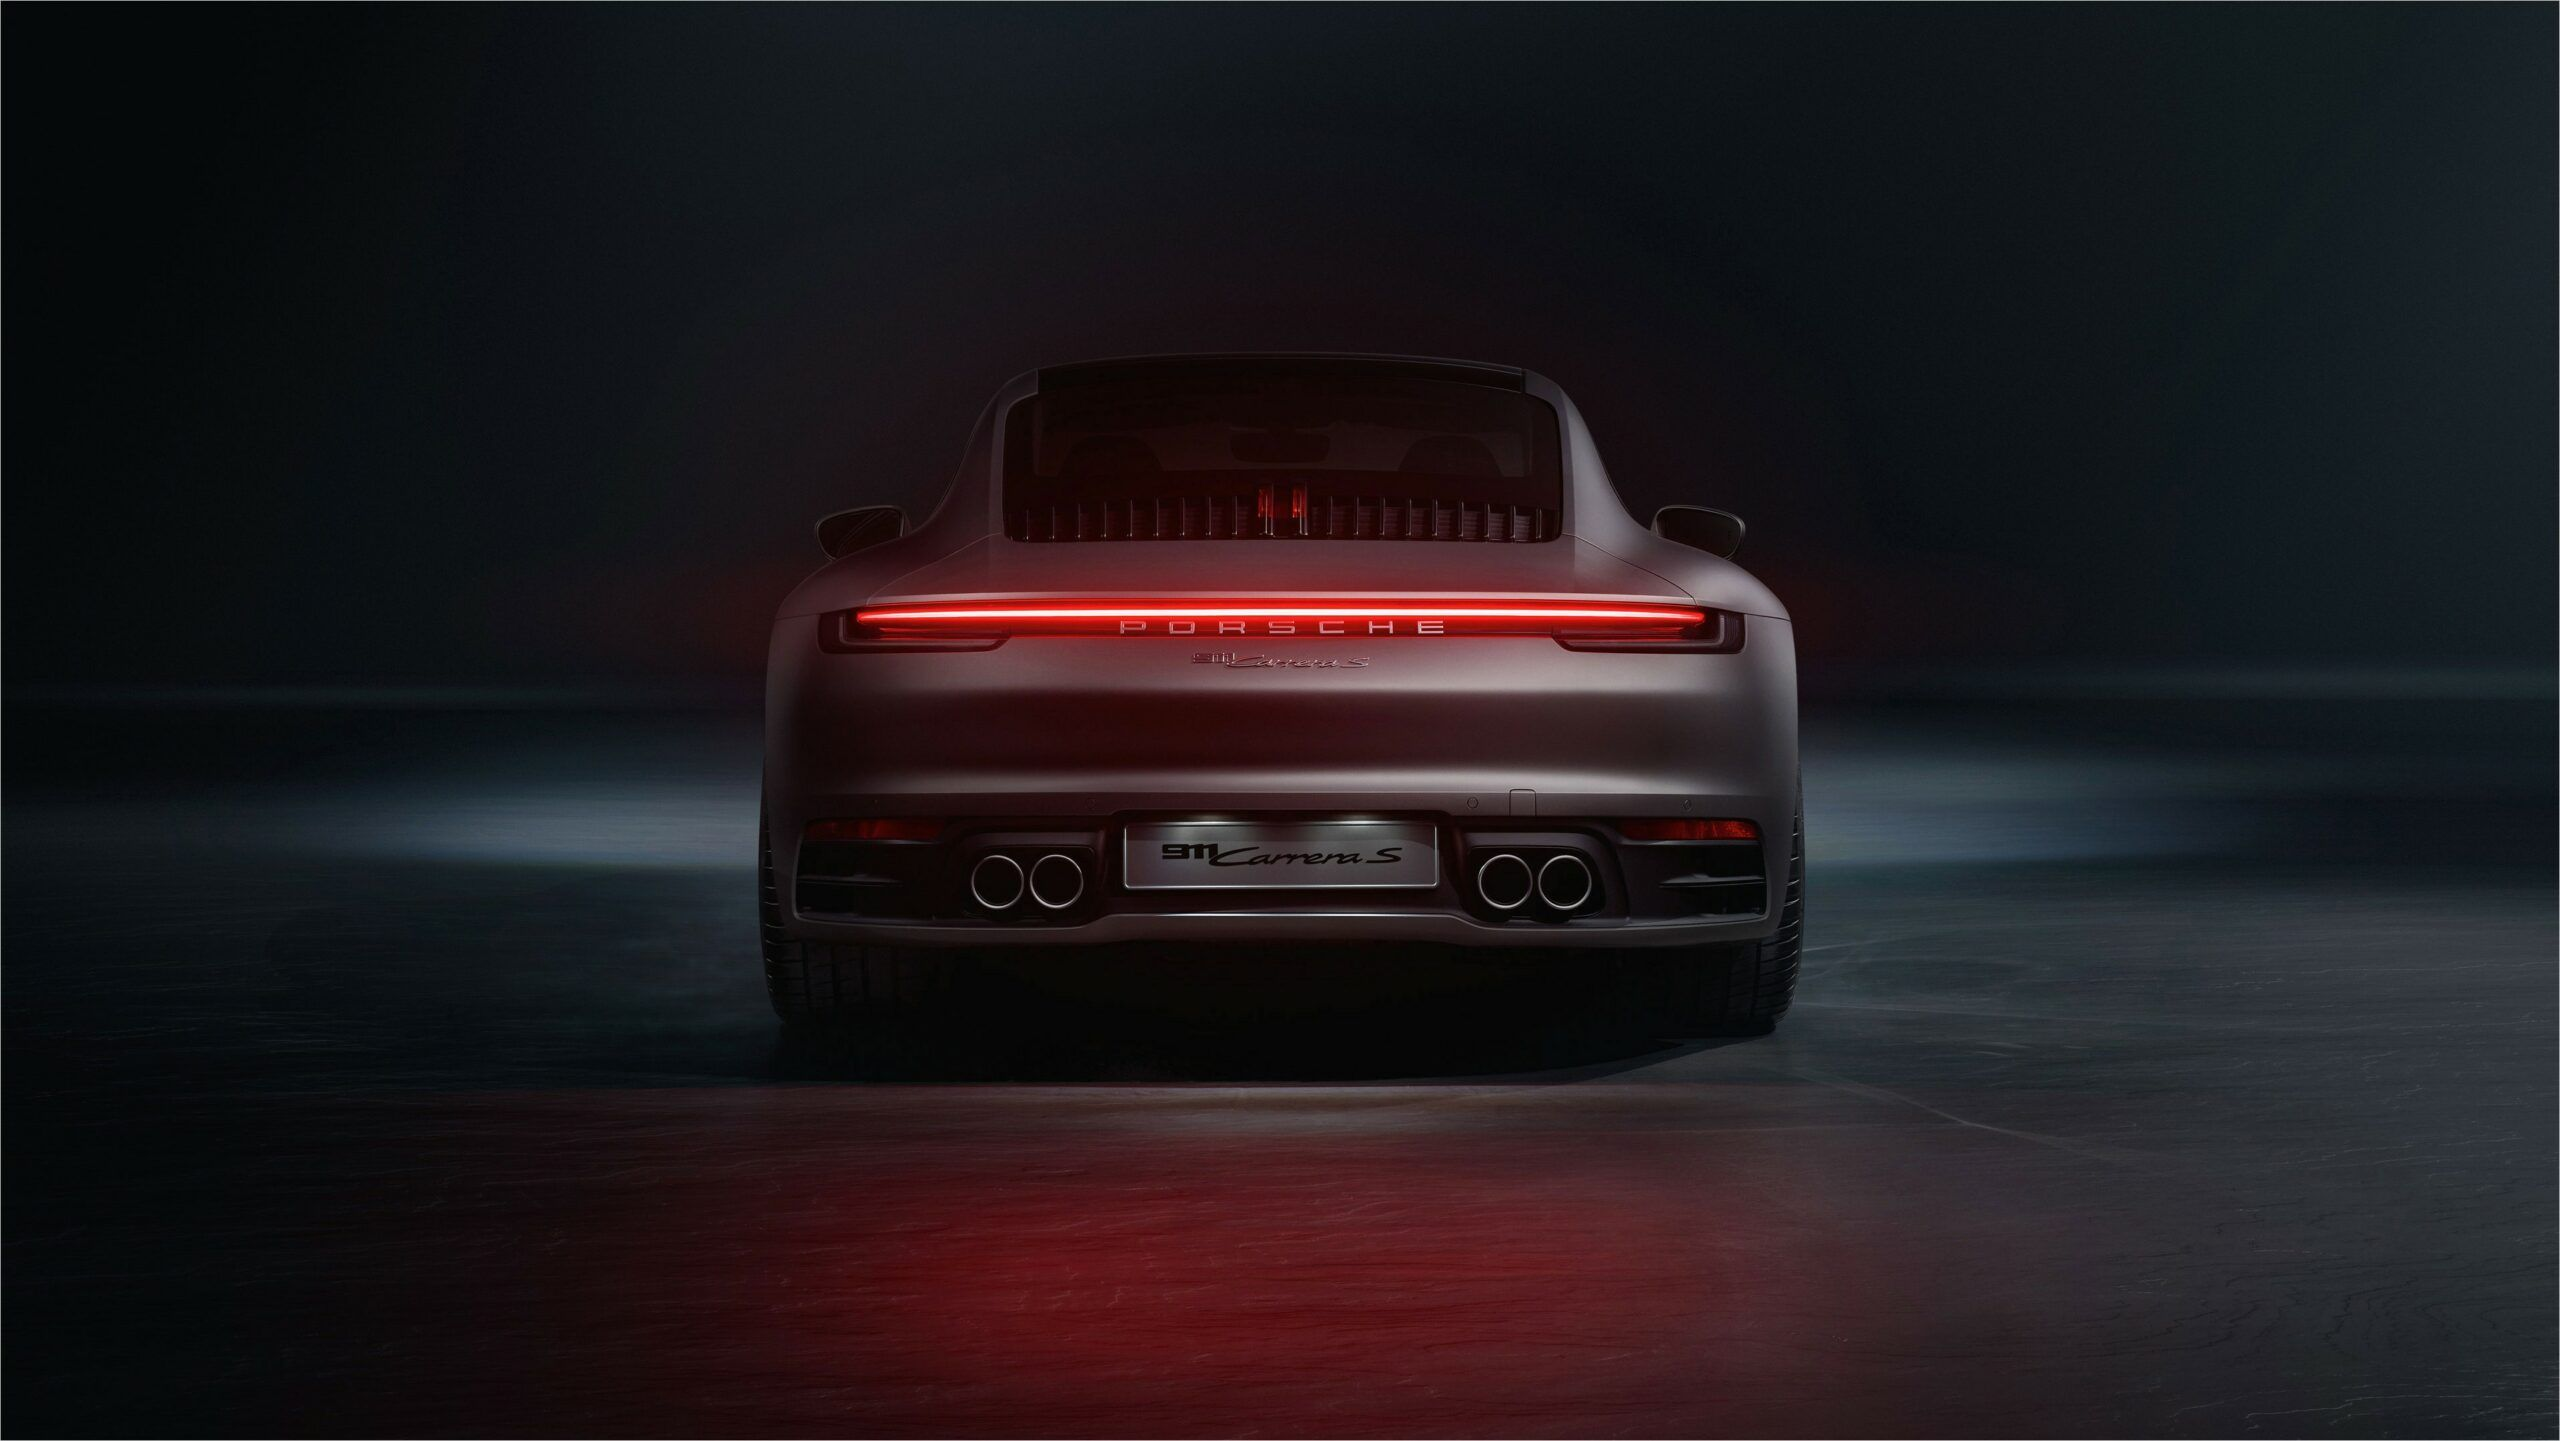 16 9 4k Hdr Wallpapers Porsche Lights In 2020 Porsche 911 Porsche 911 Carrera New Porsche